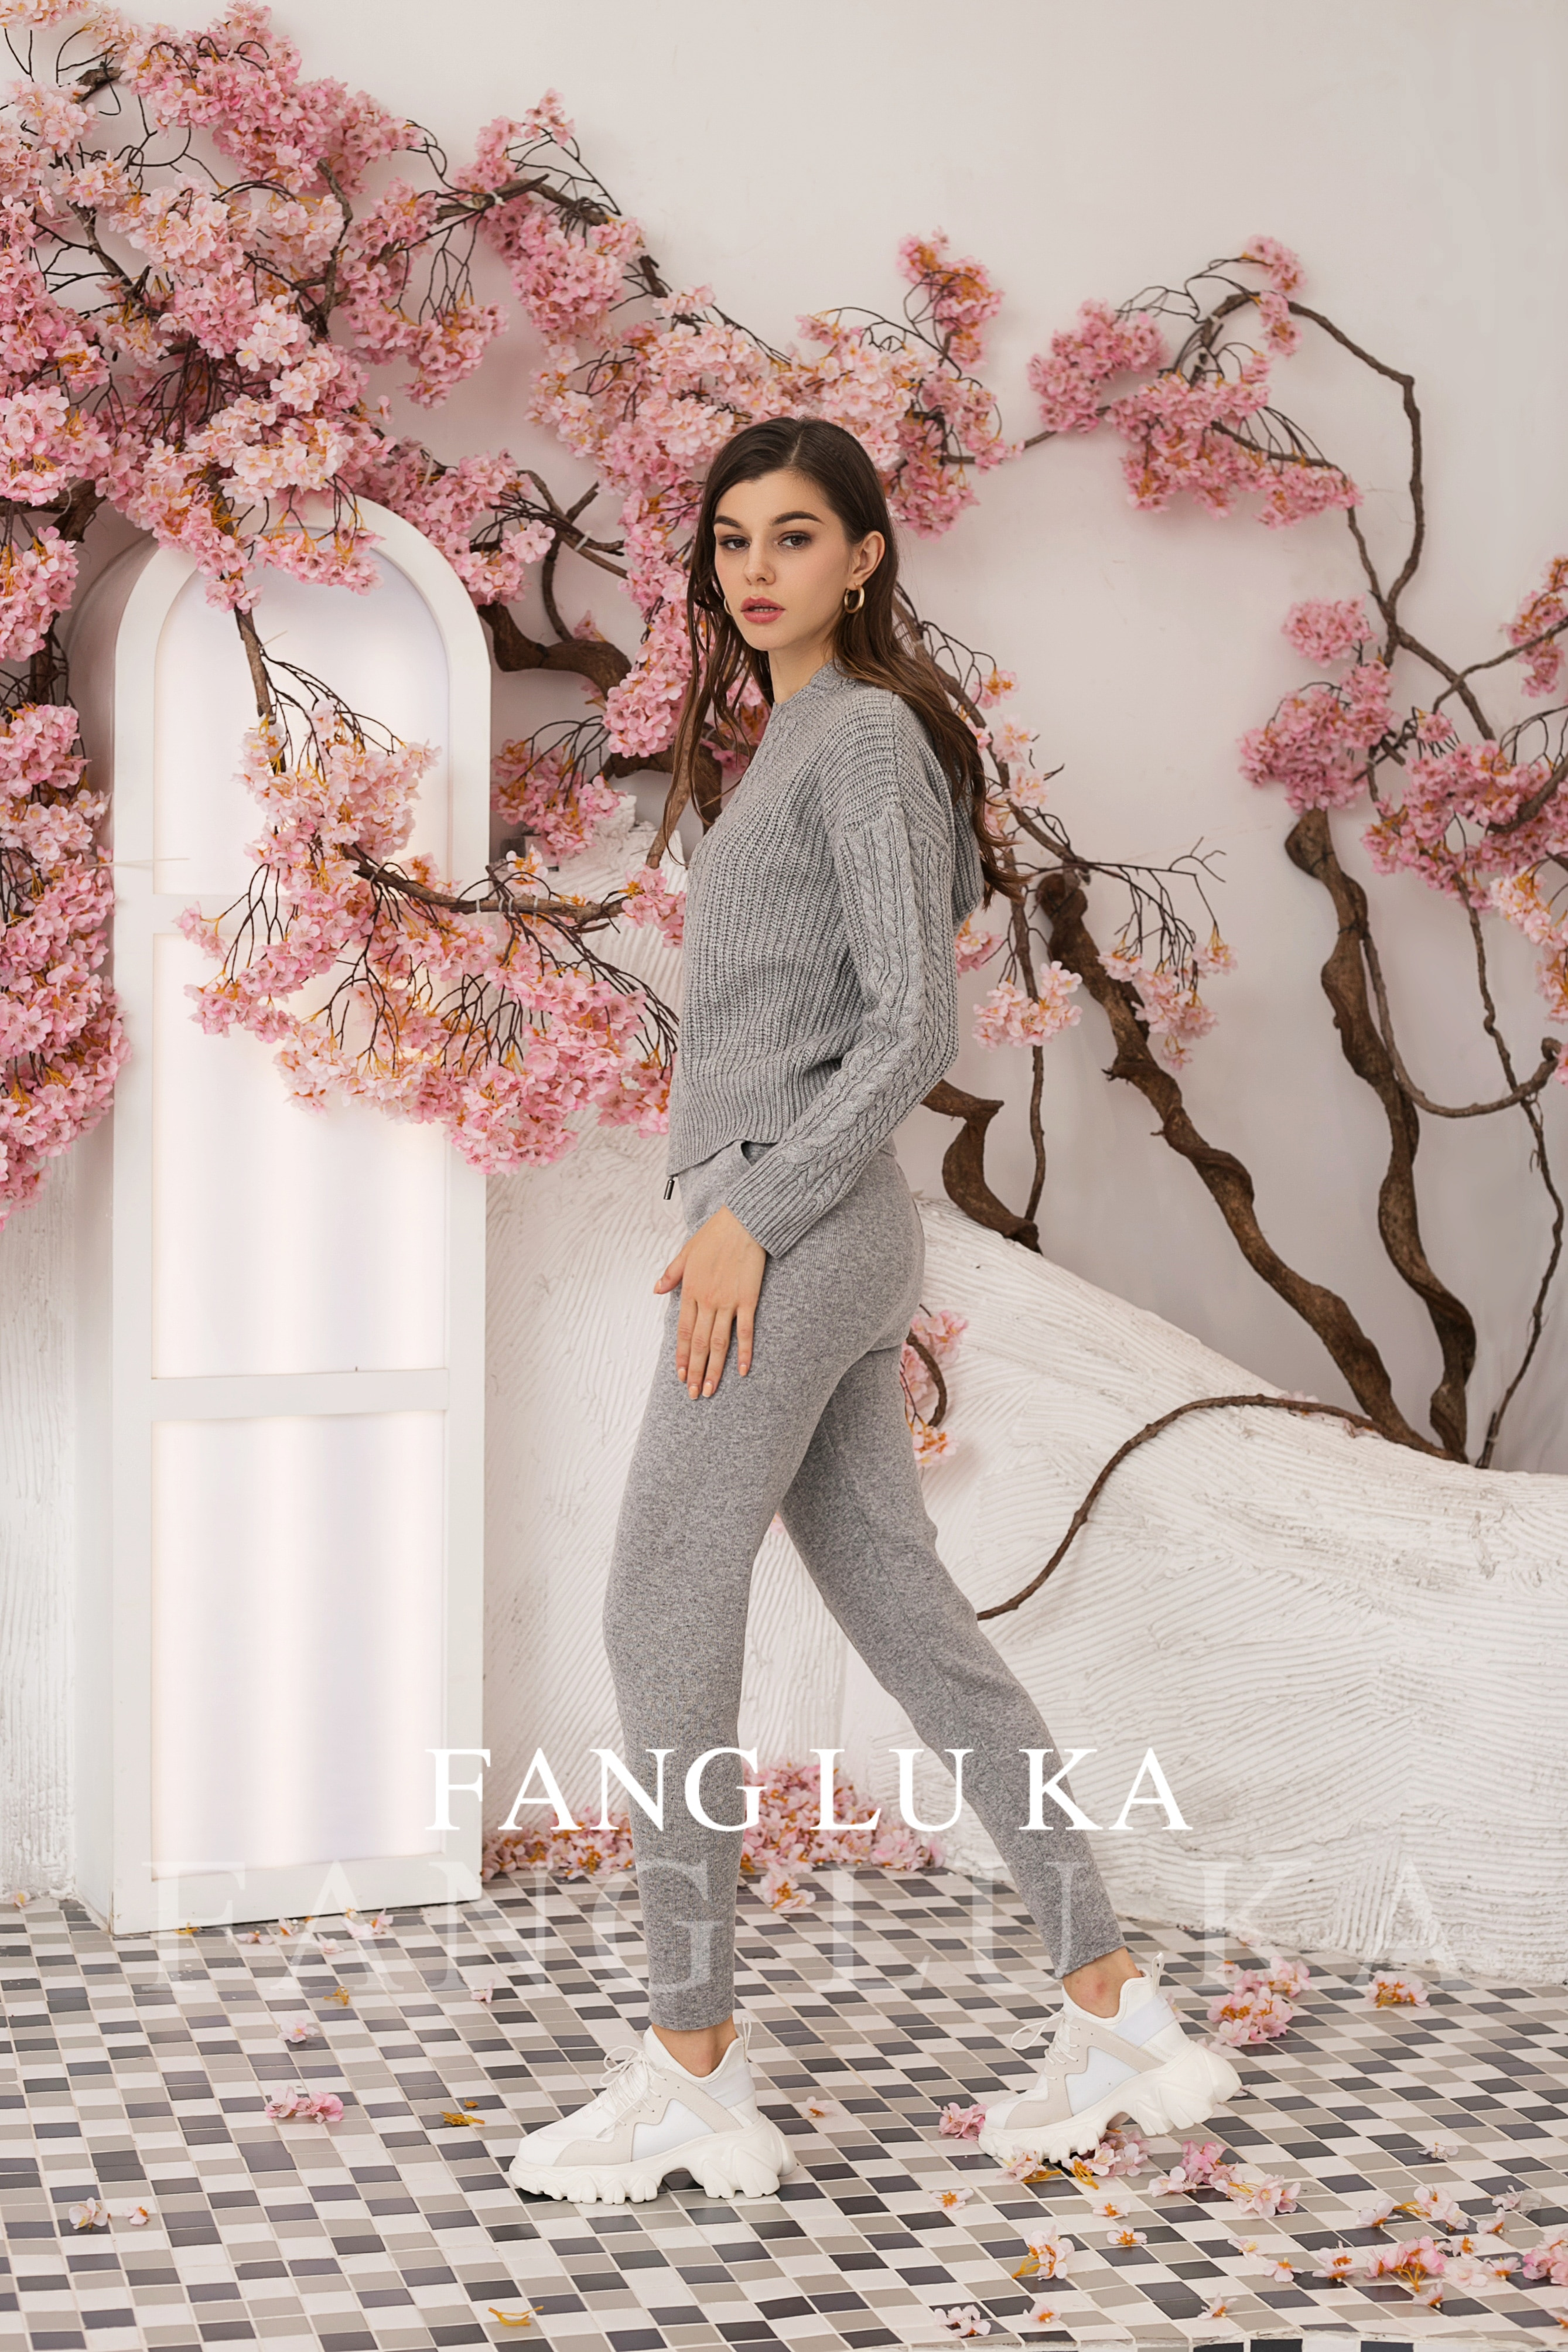 Fashion Autumn Winter Tracksuit Women Hoodies + new casual Leggings Two Piece Set Outfits Knitted enlarge